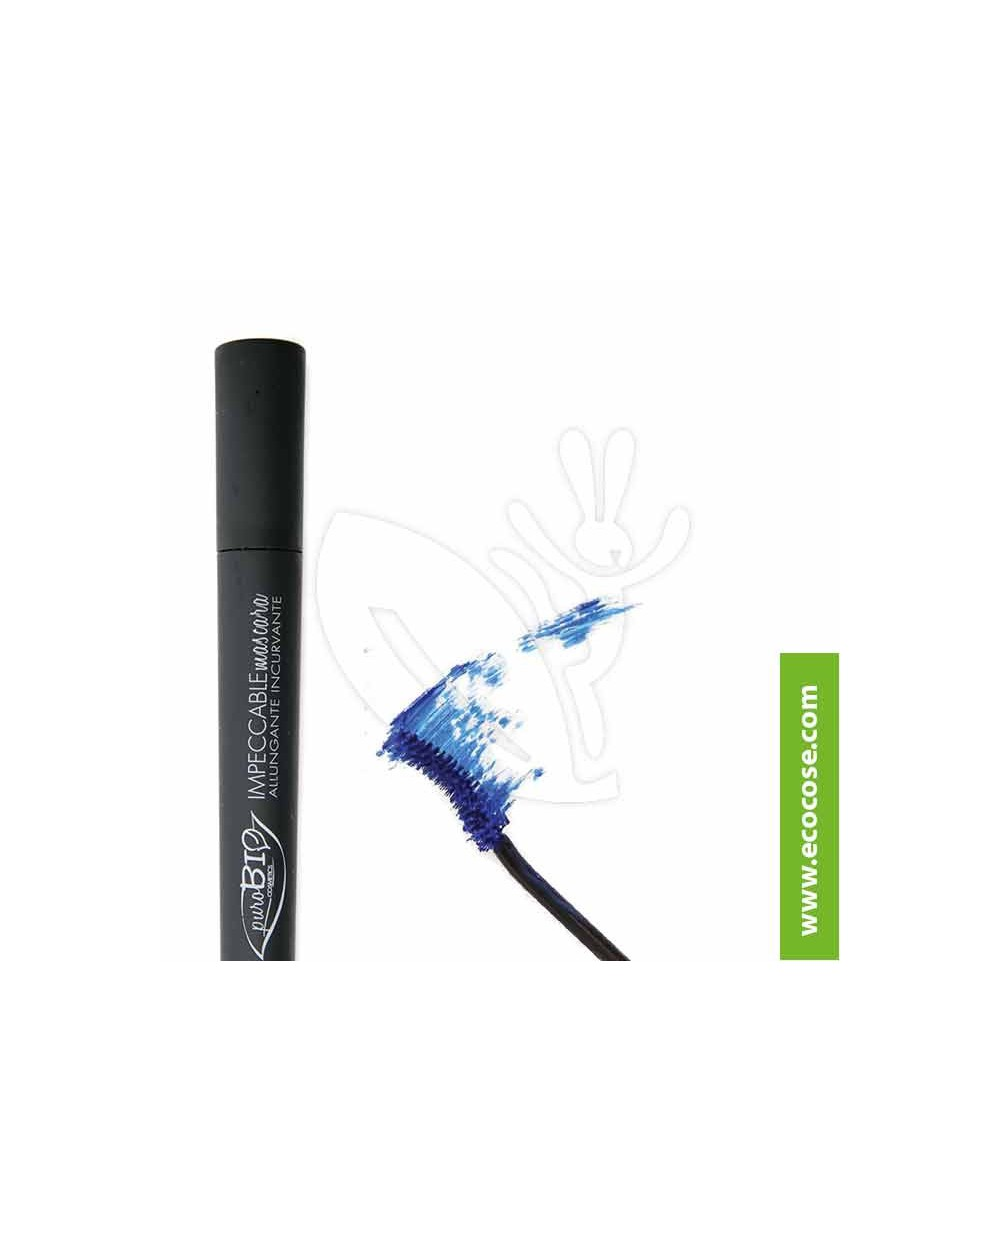 PuroBIO Cosmetics - Mascara Impeccabile Biologico 02 Blu